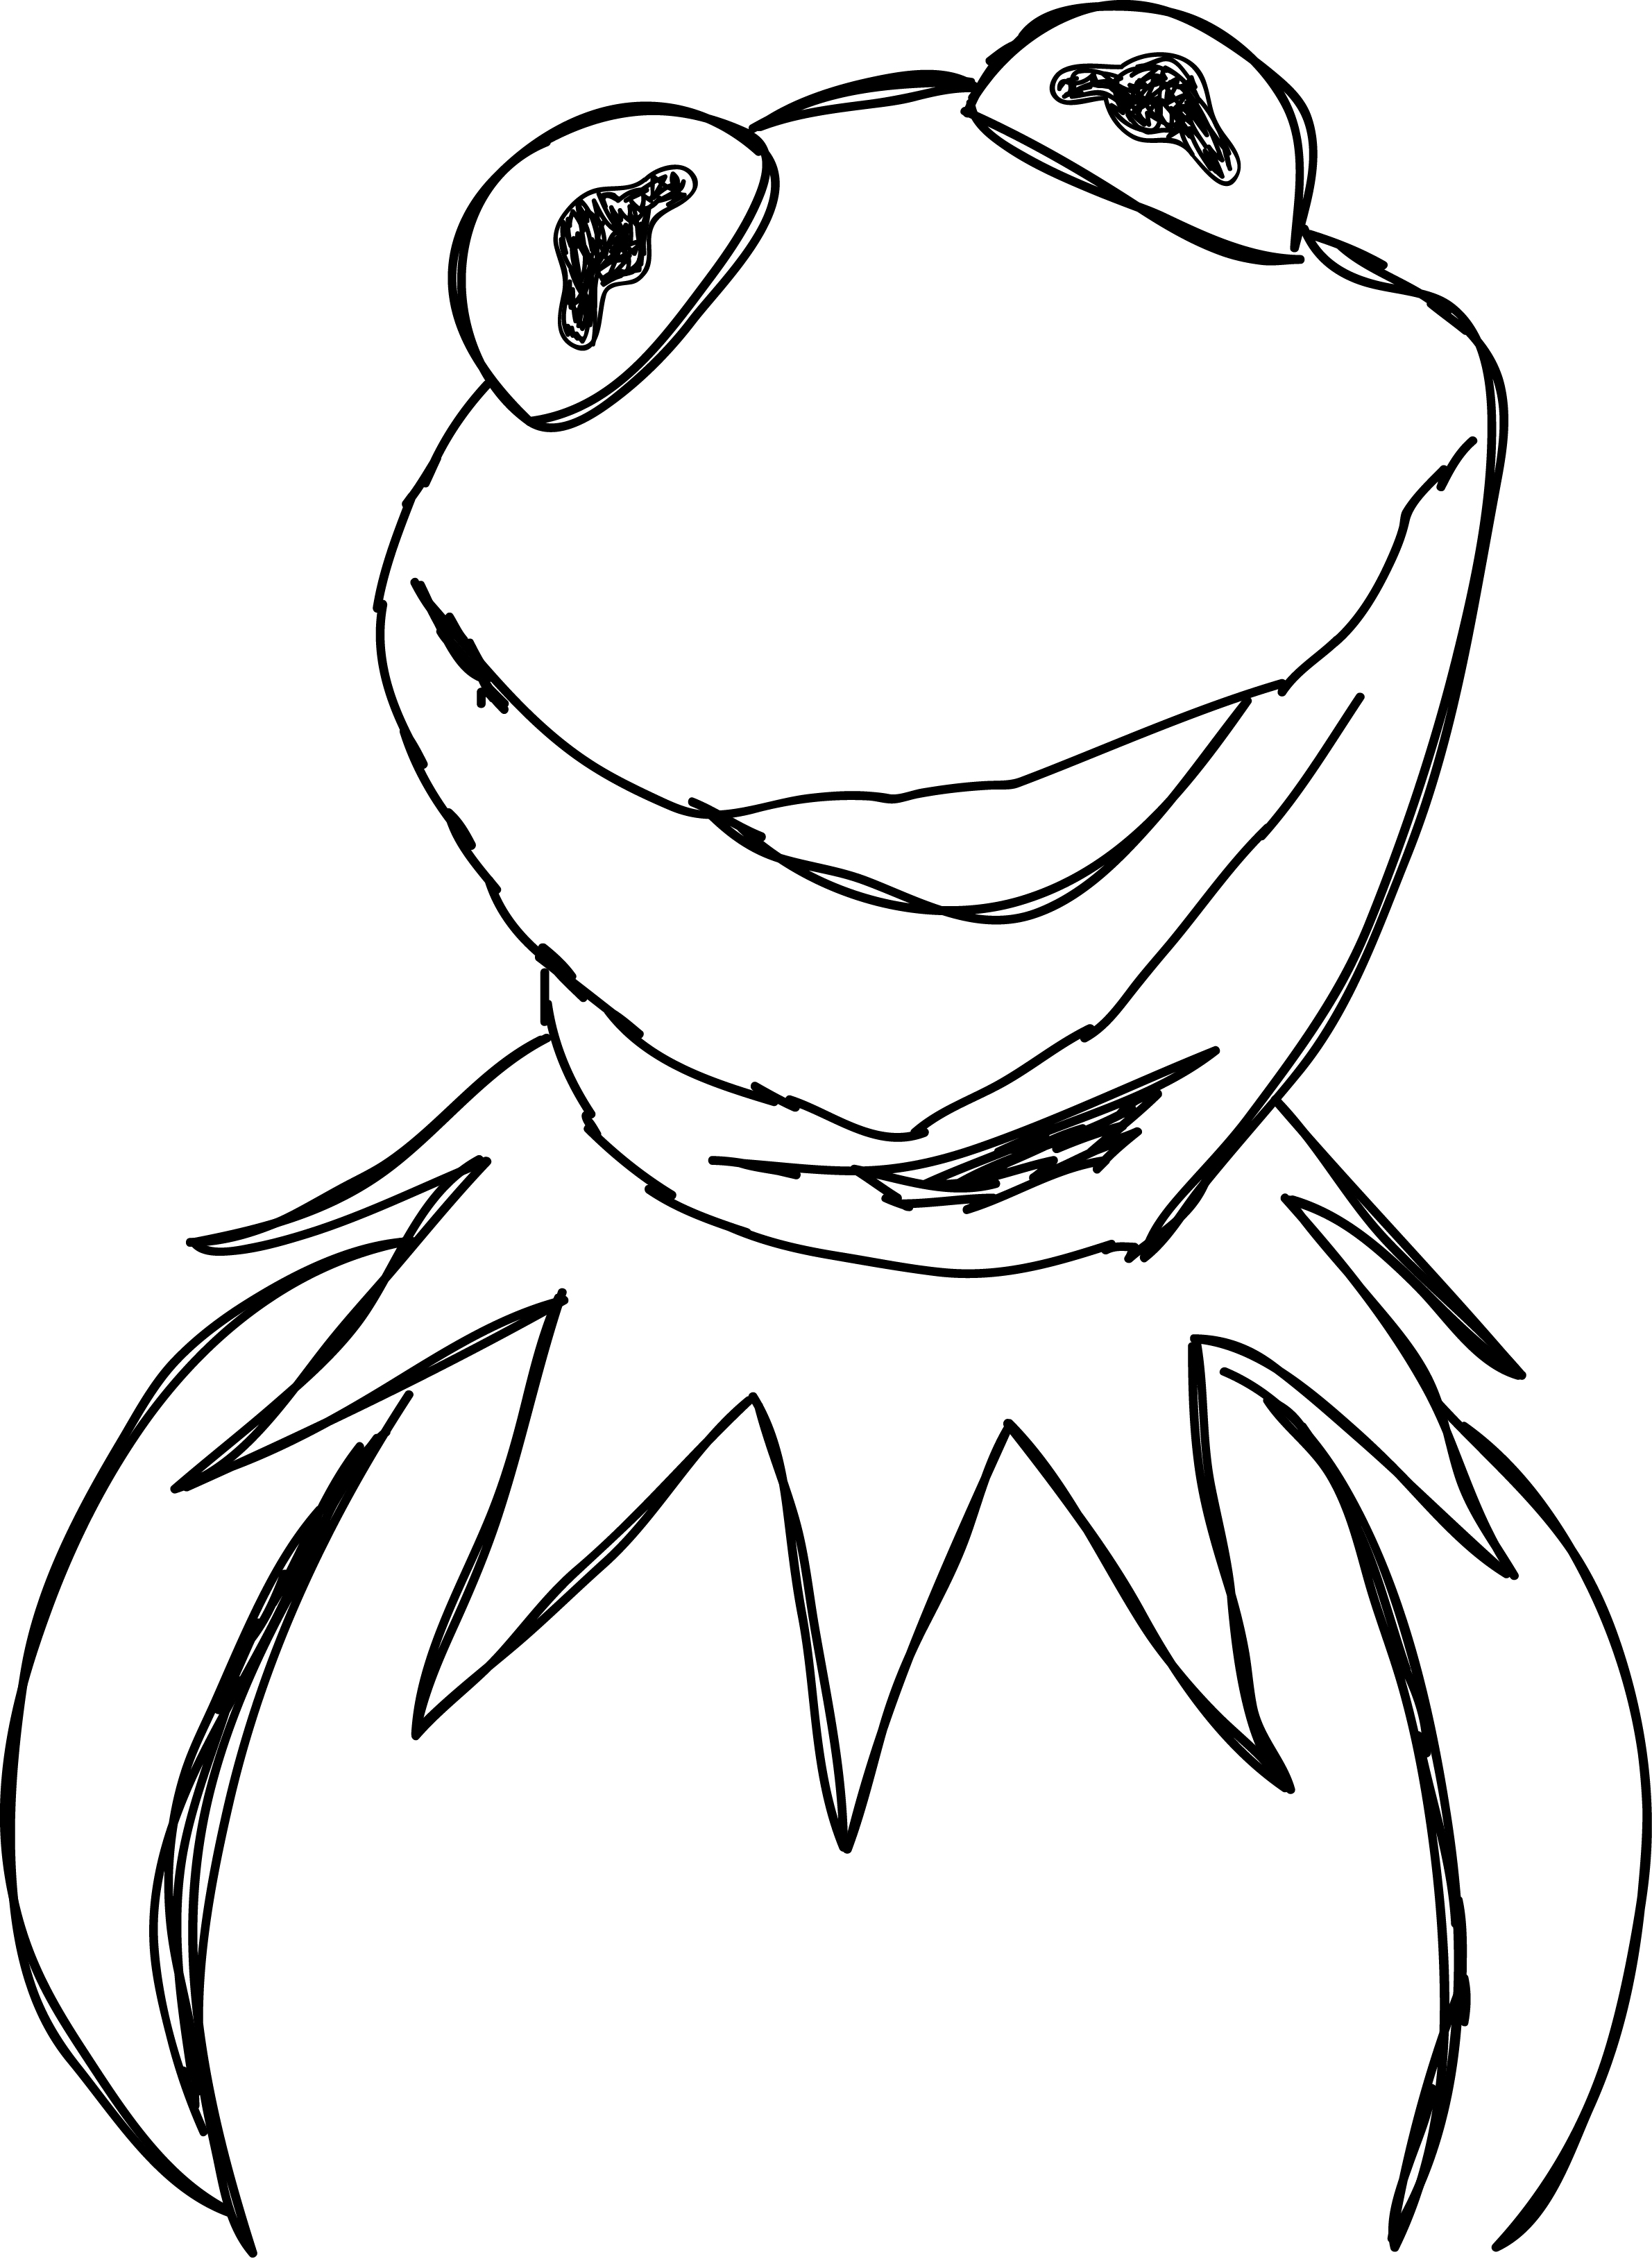 drawing kermit the frog pin on wecoloringpage kermit drawing the frog